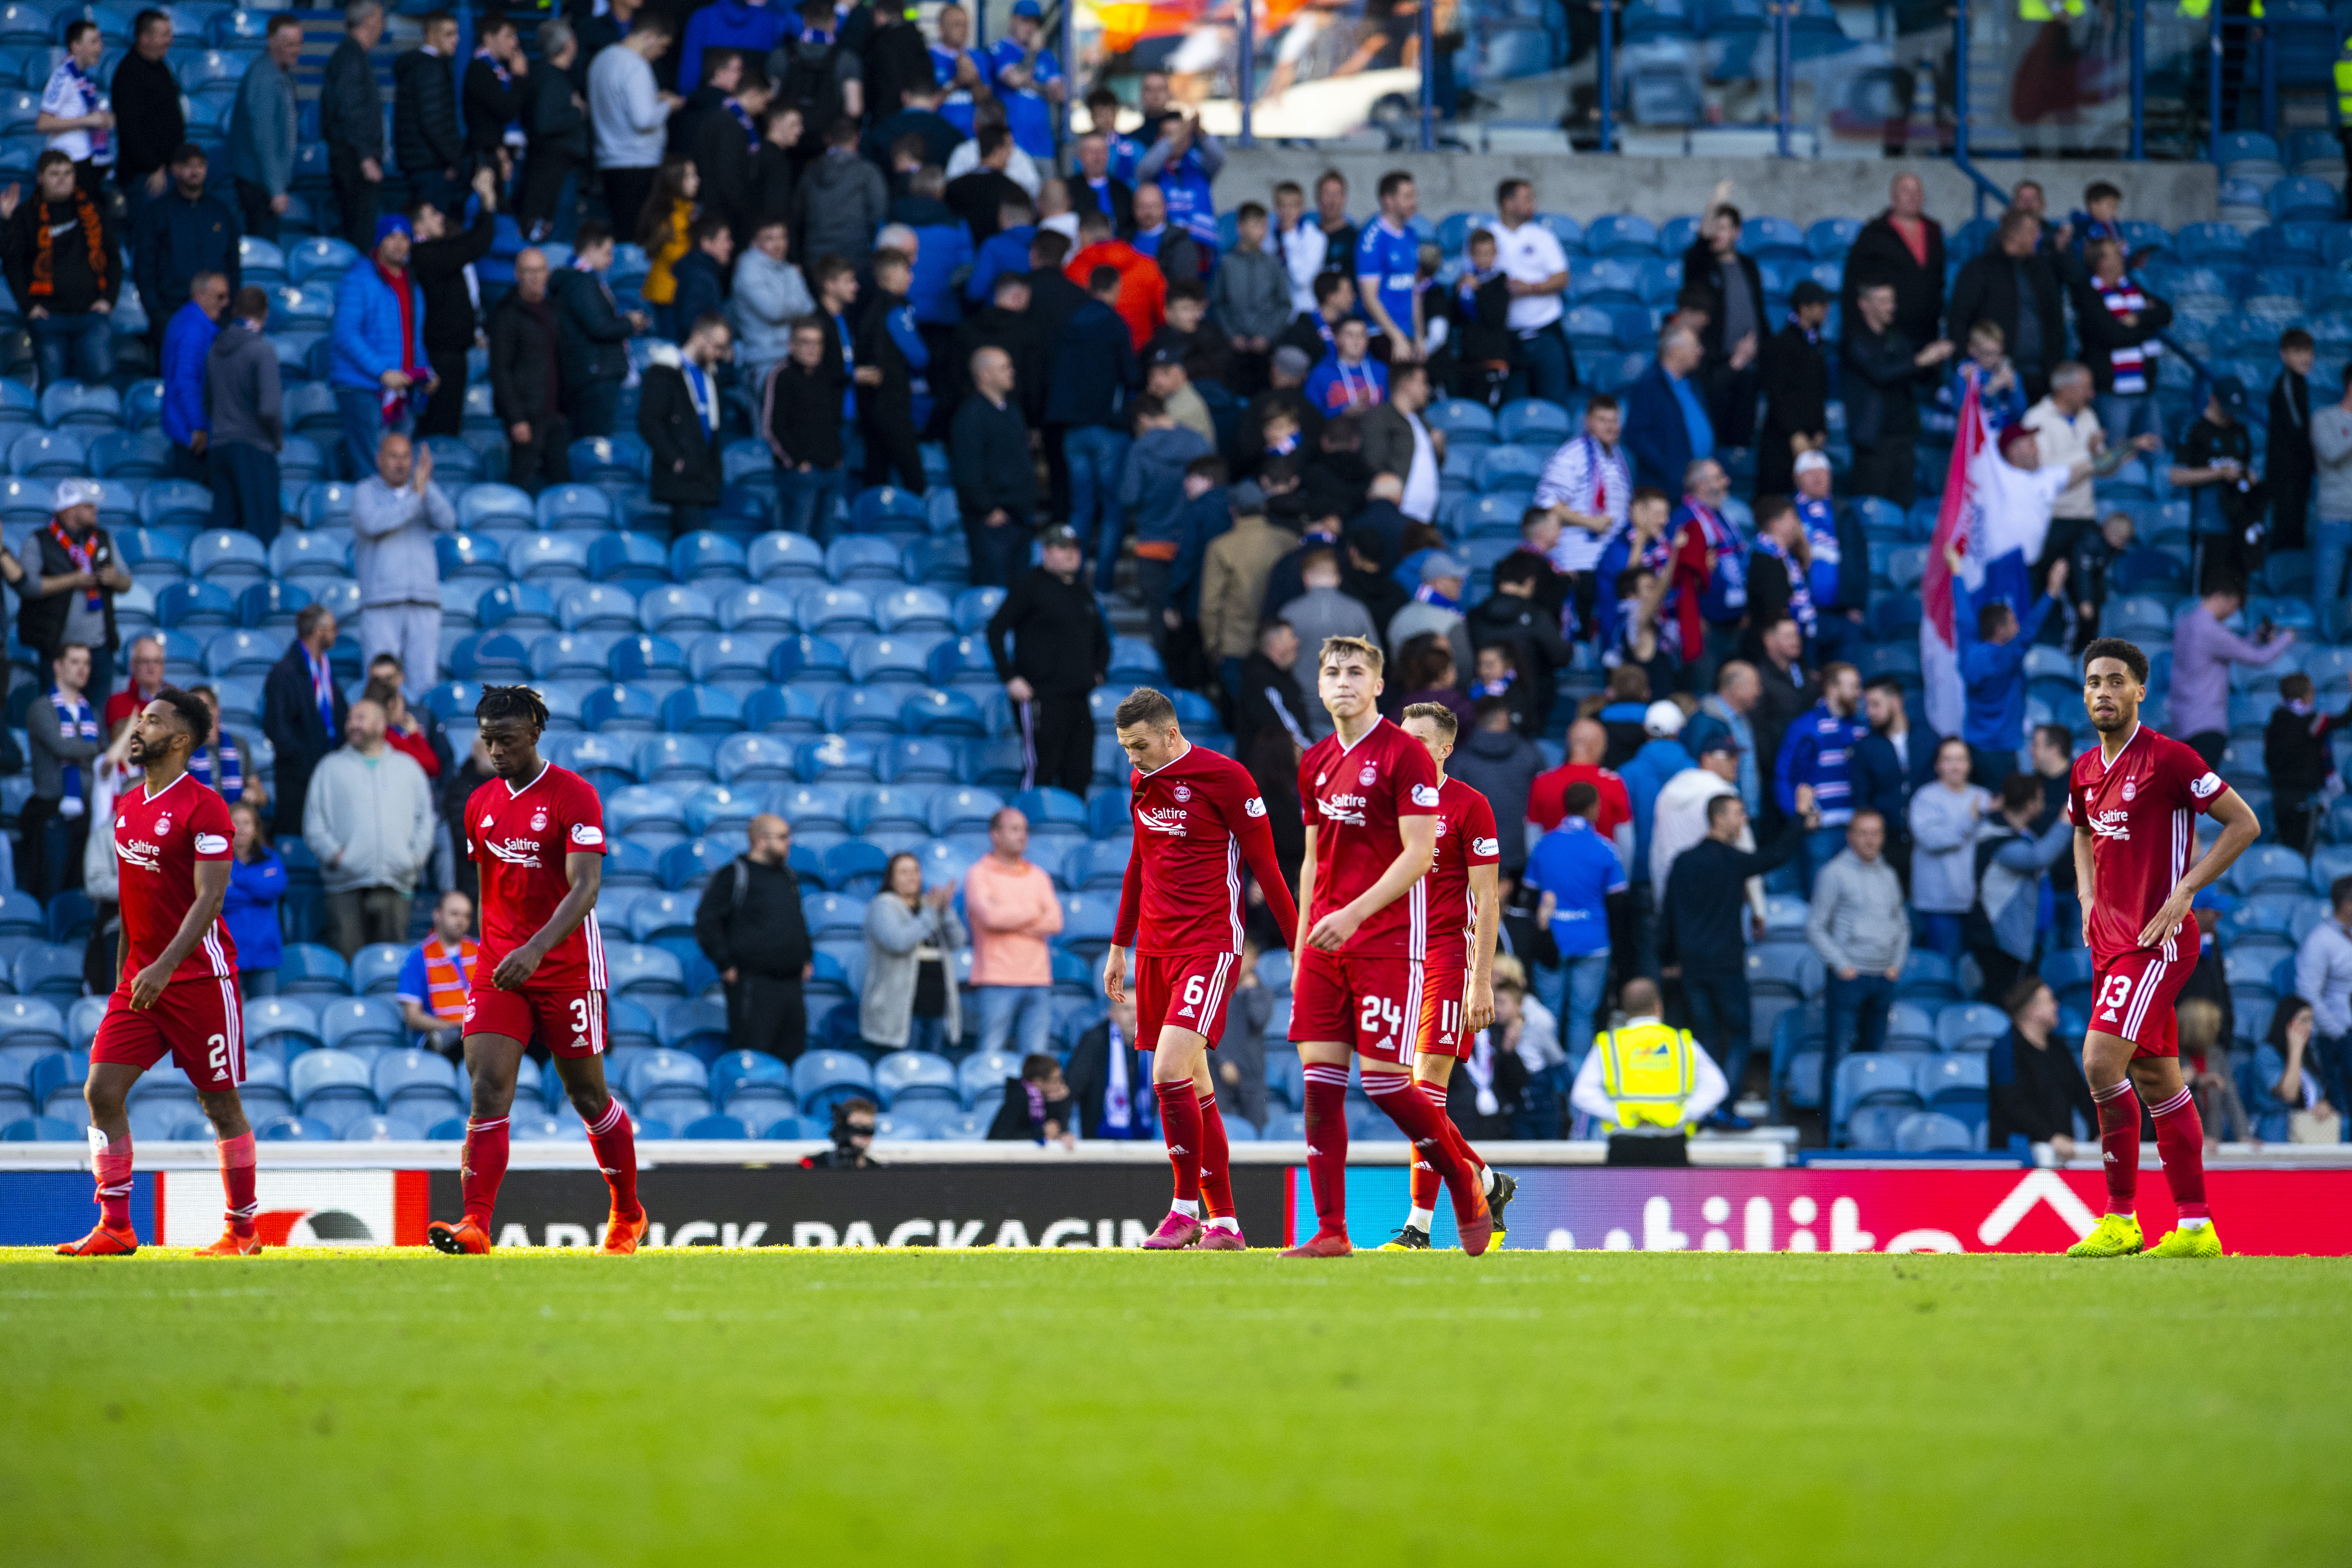 Aberdeen at full-time after being beaten by Rangers.